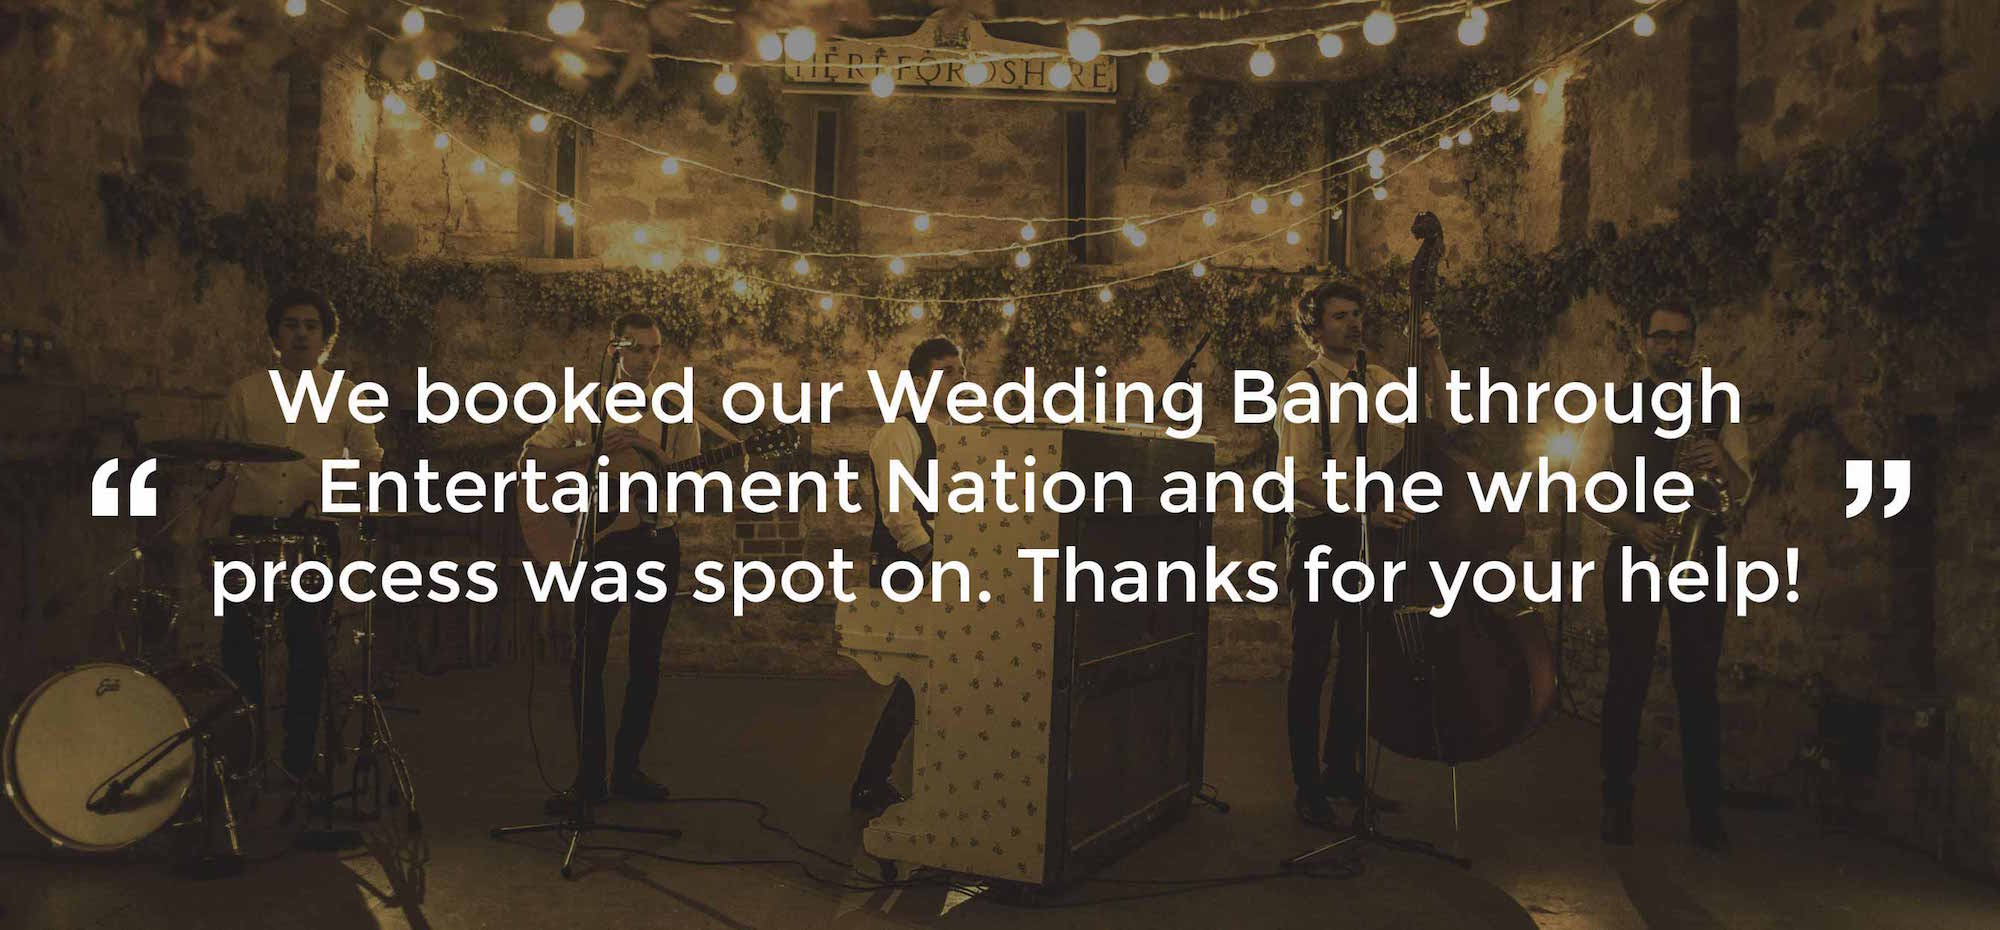 Review of Wedding Band Leeds